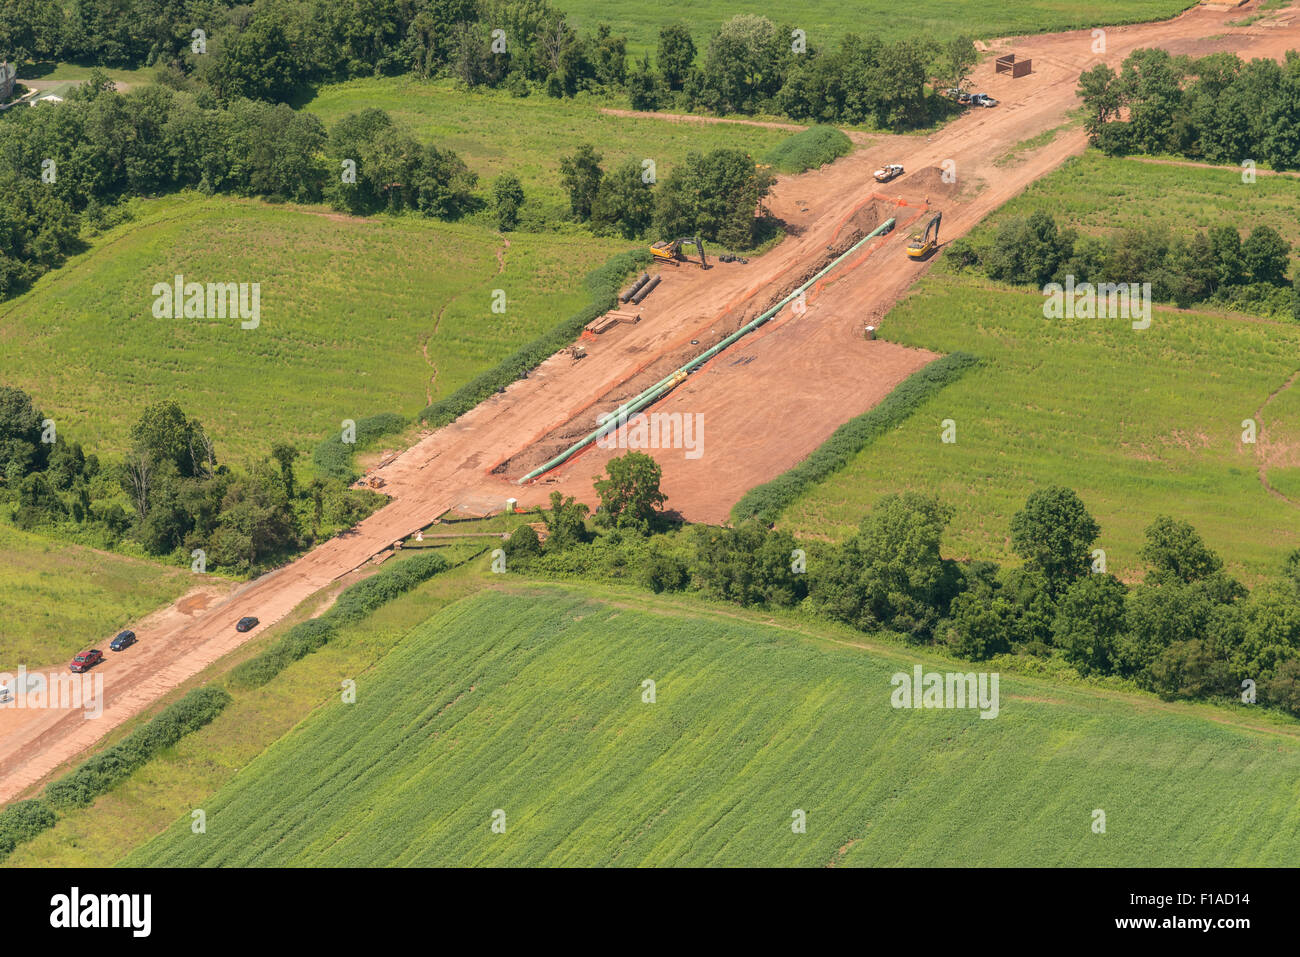 Aerial View Of Pipeline Being Installed - Stock Image